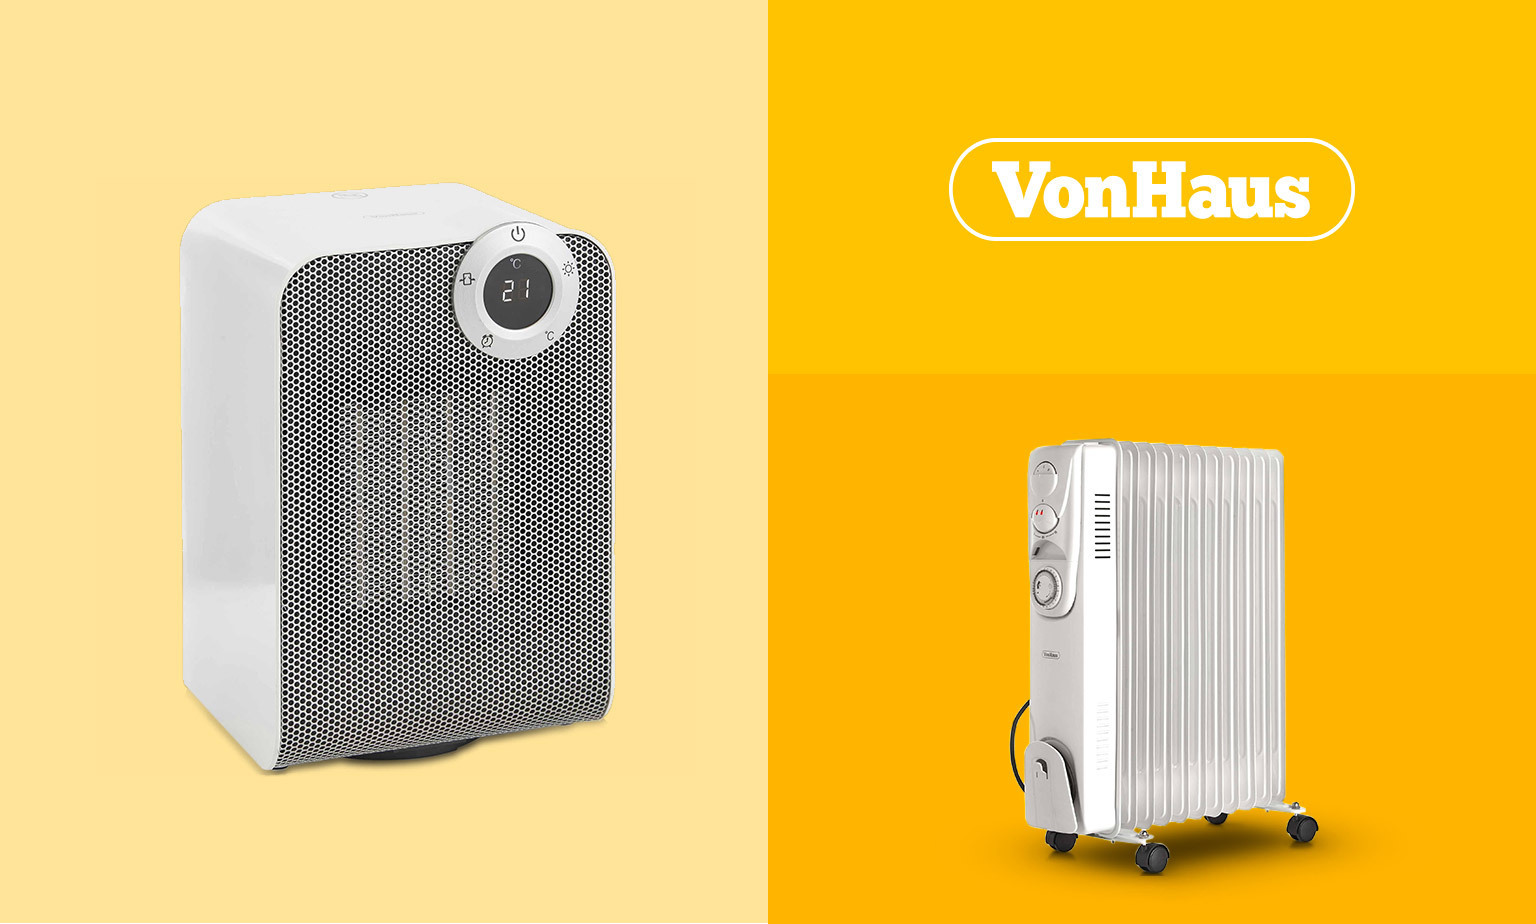 Save on VonHaus Heating!